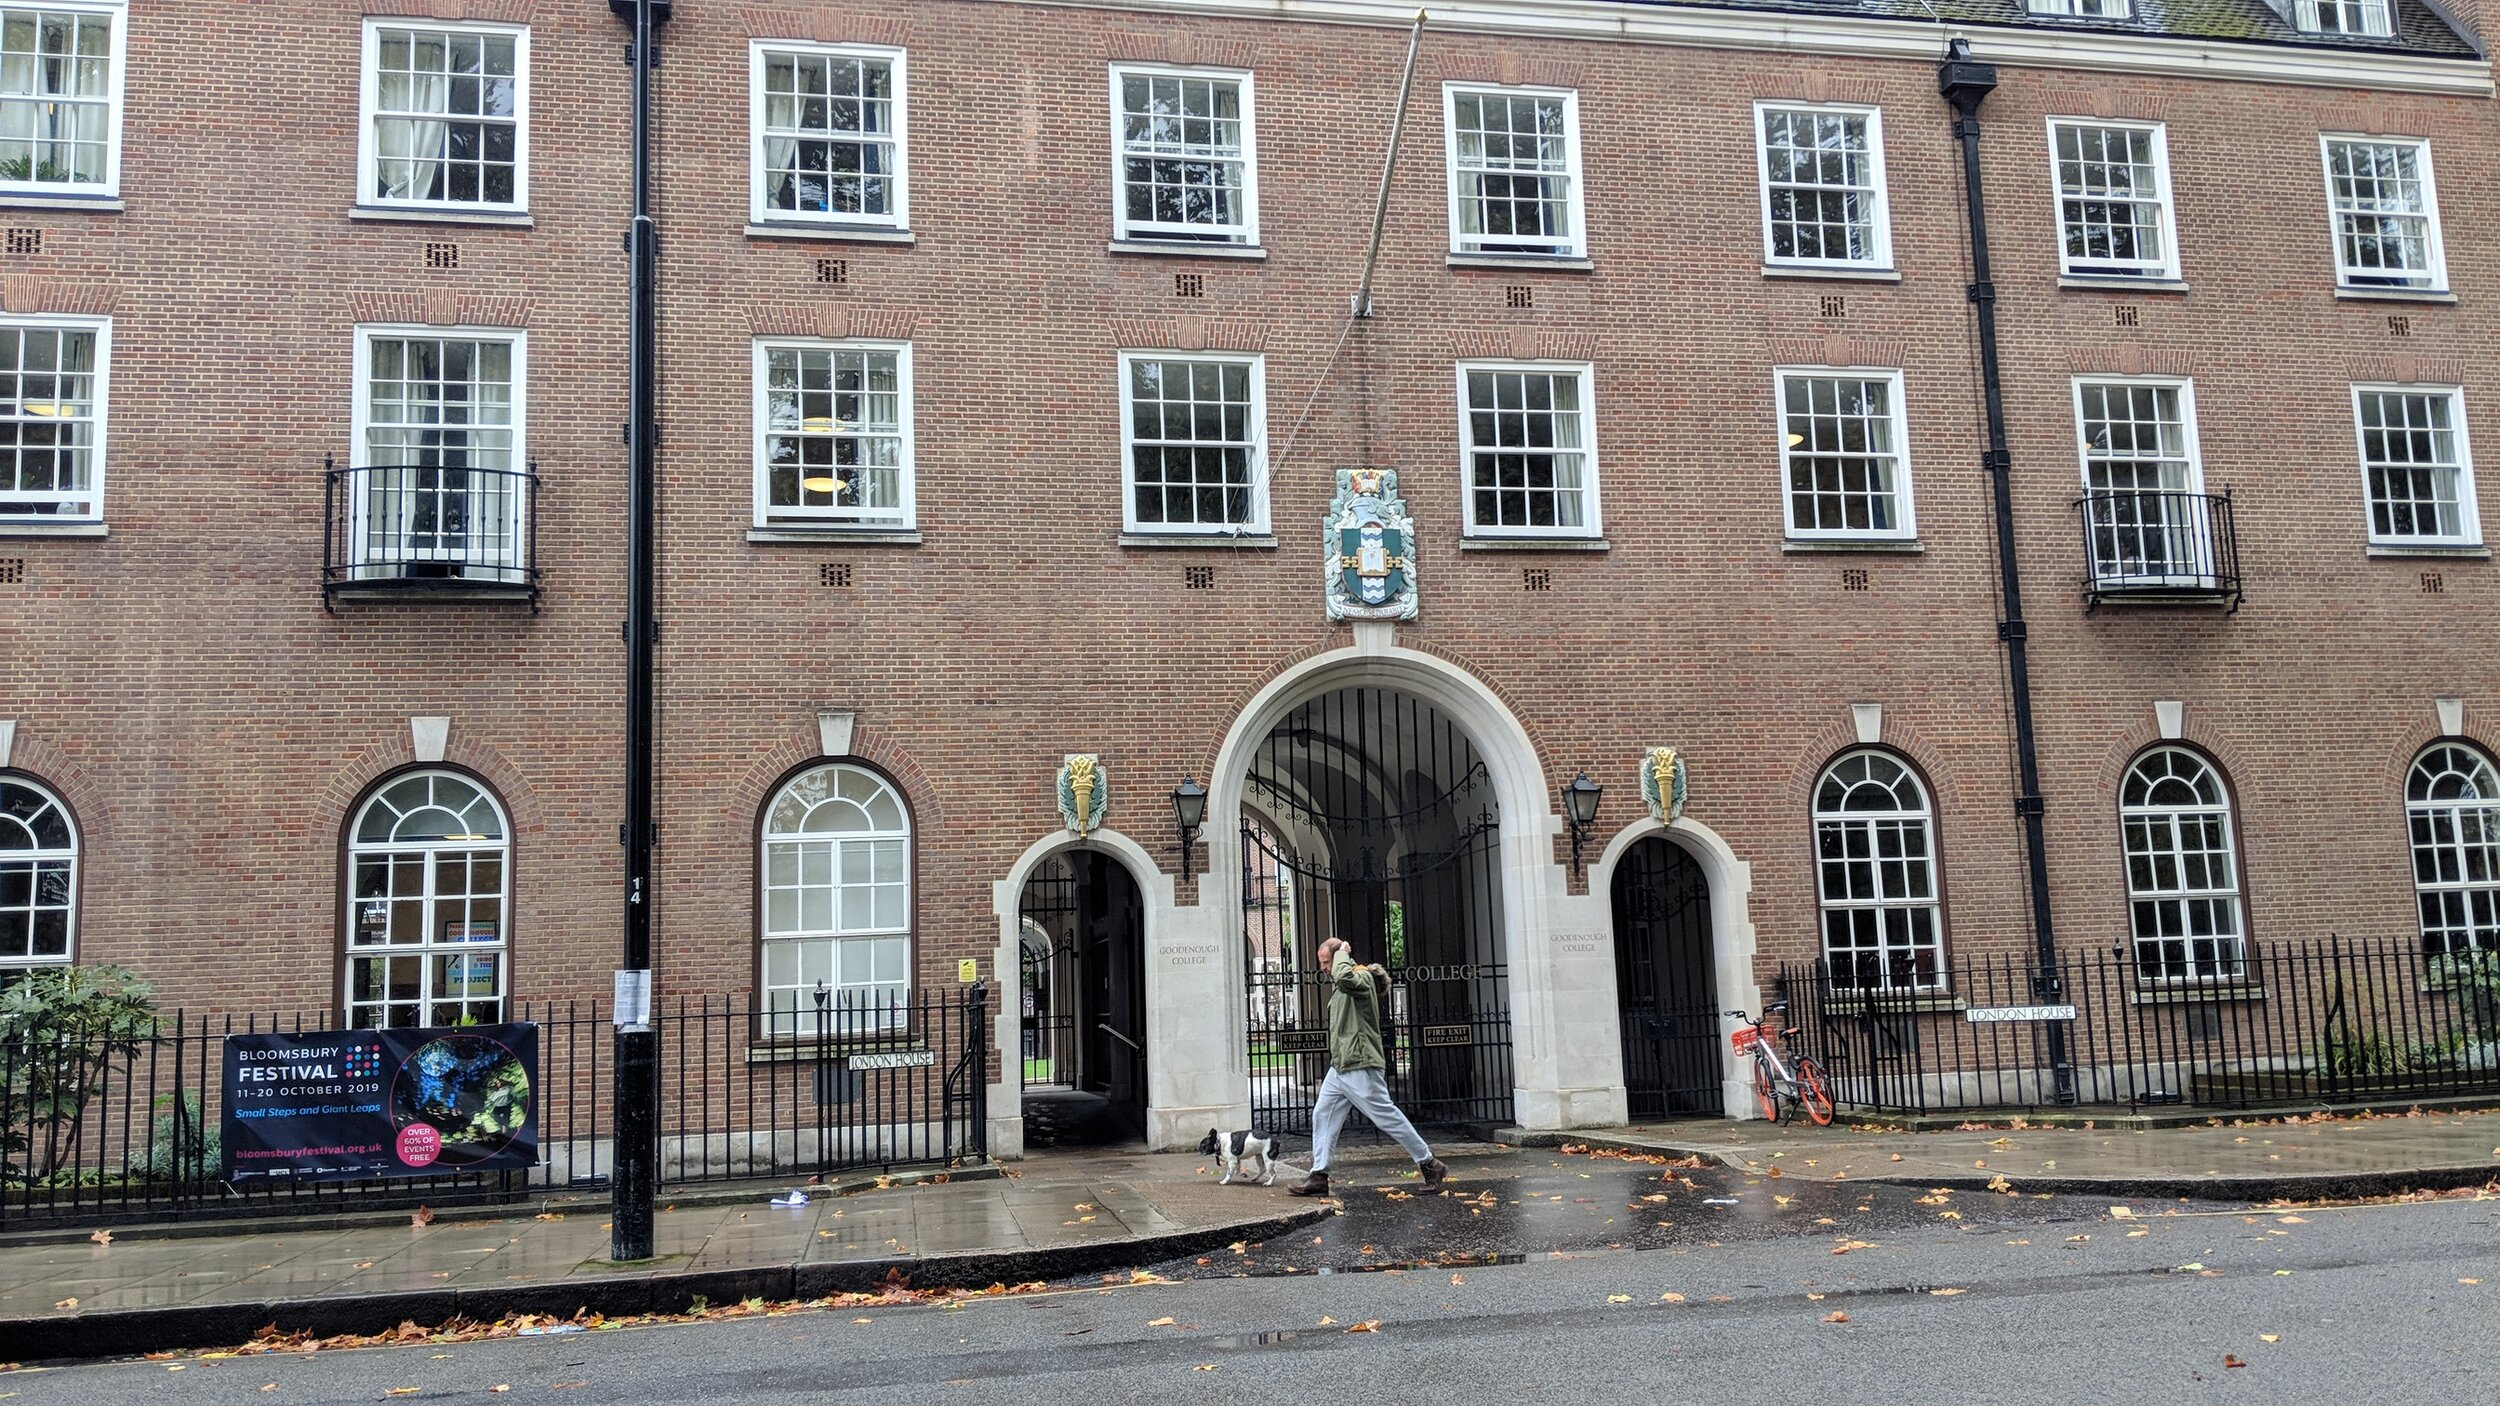 Goodenough college - visited 13/10/2019